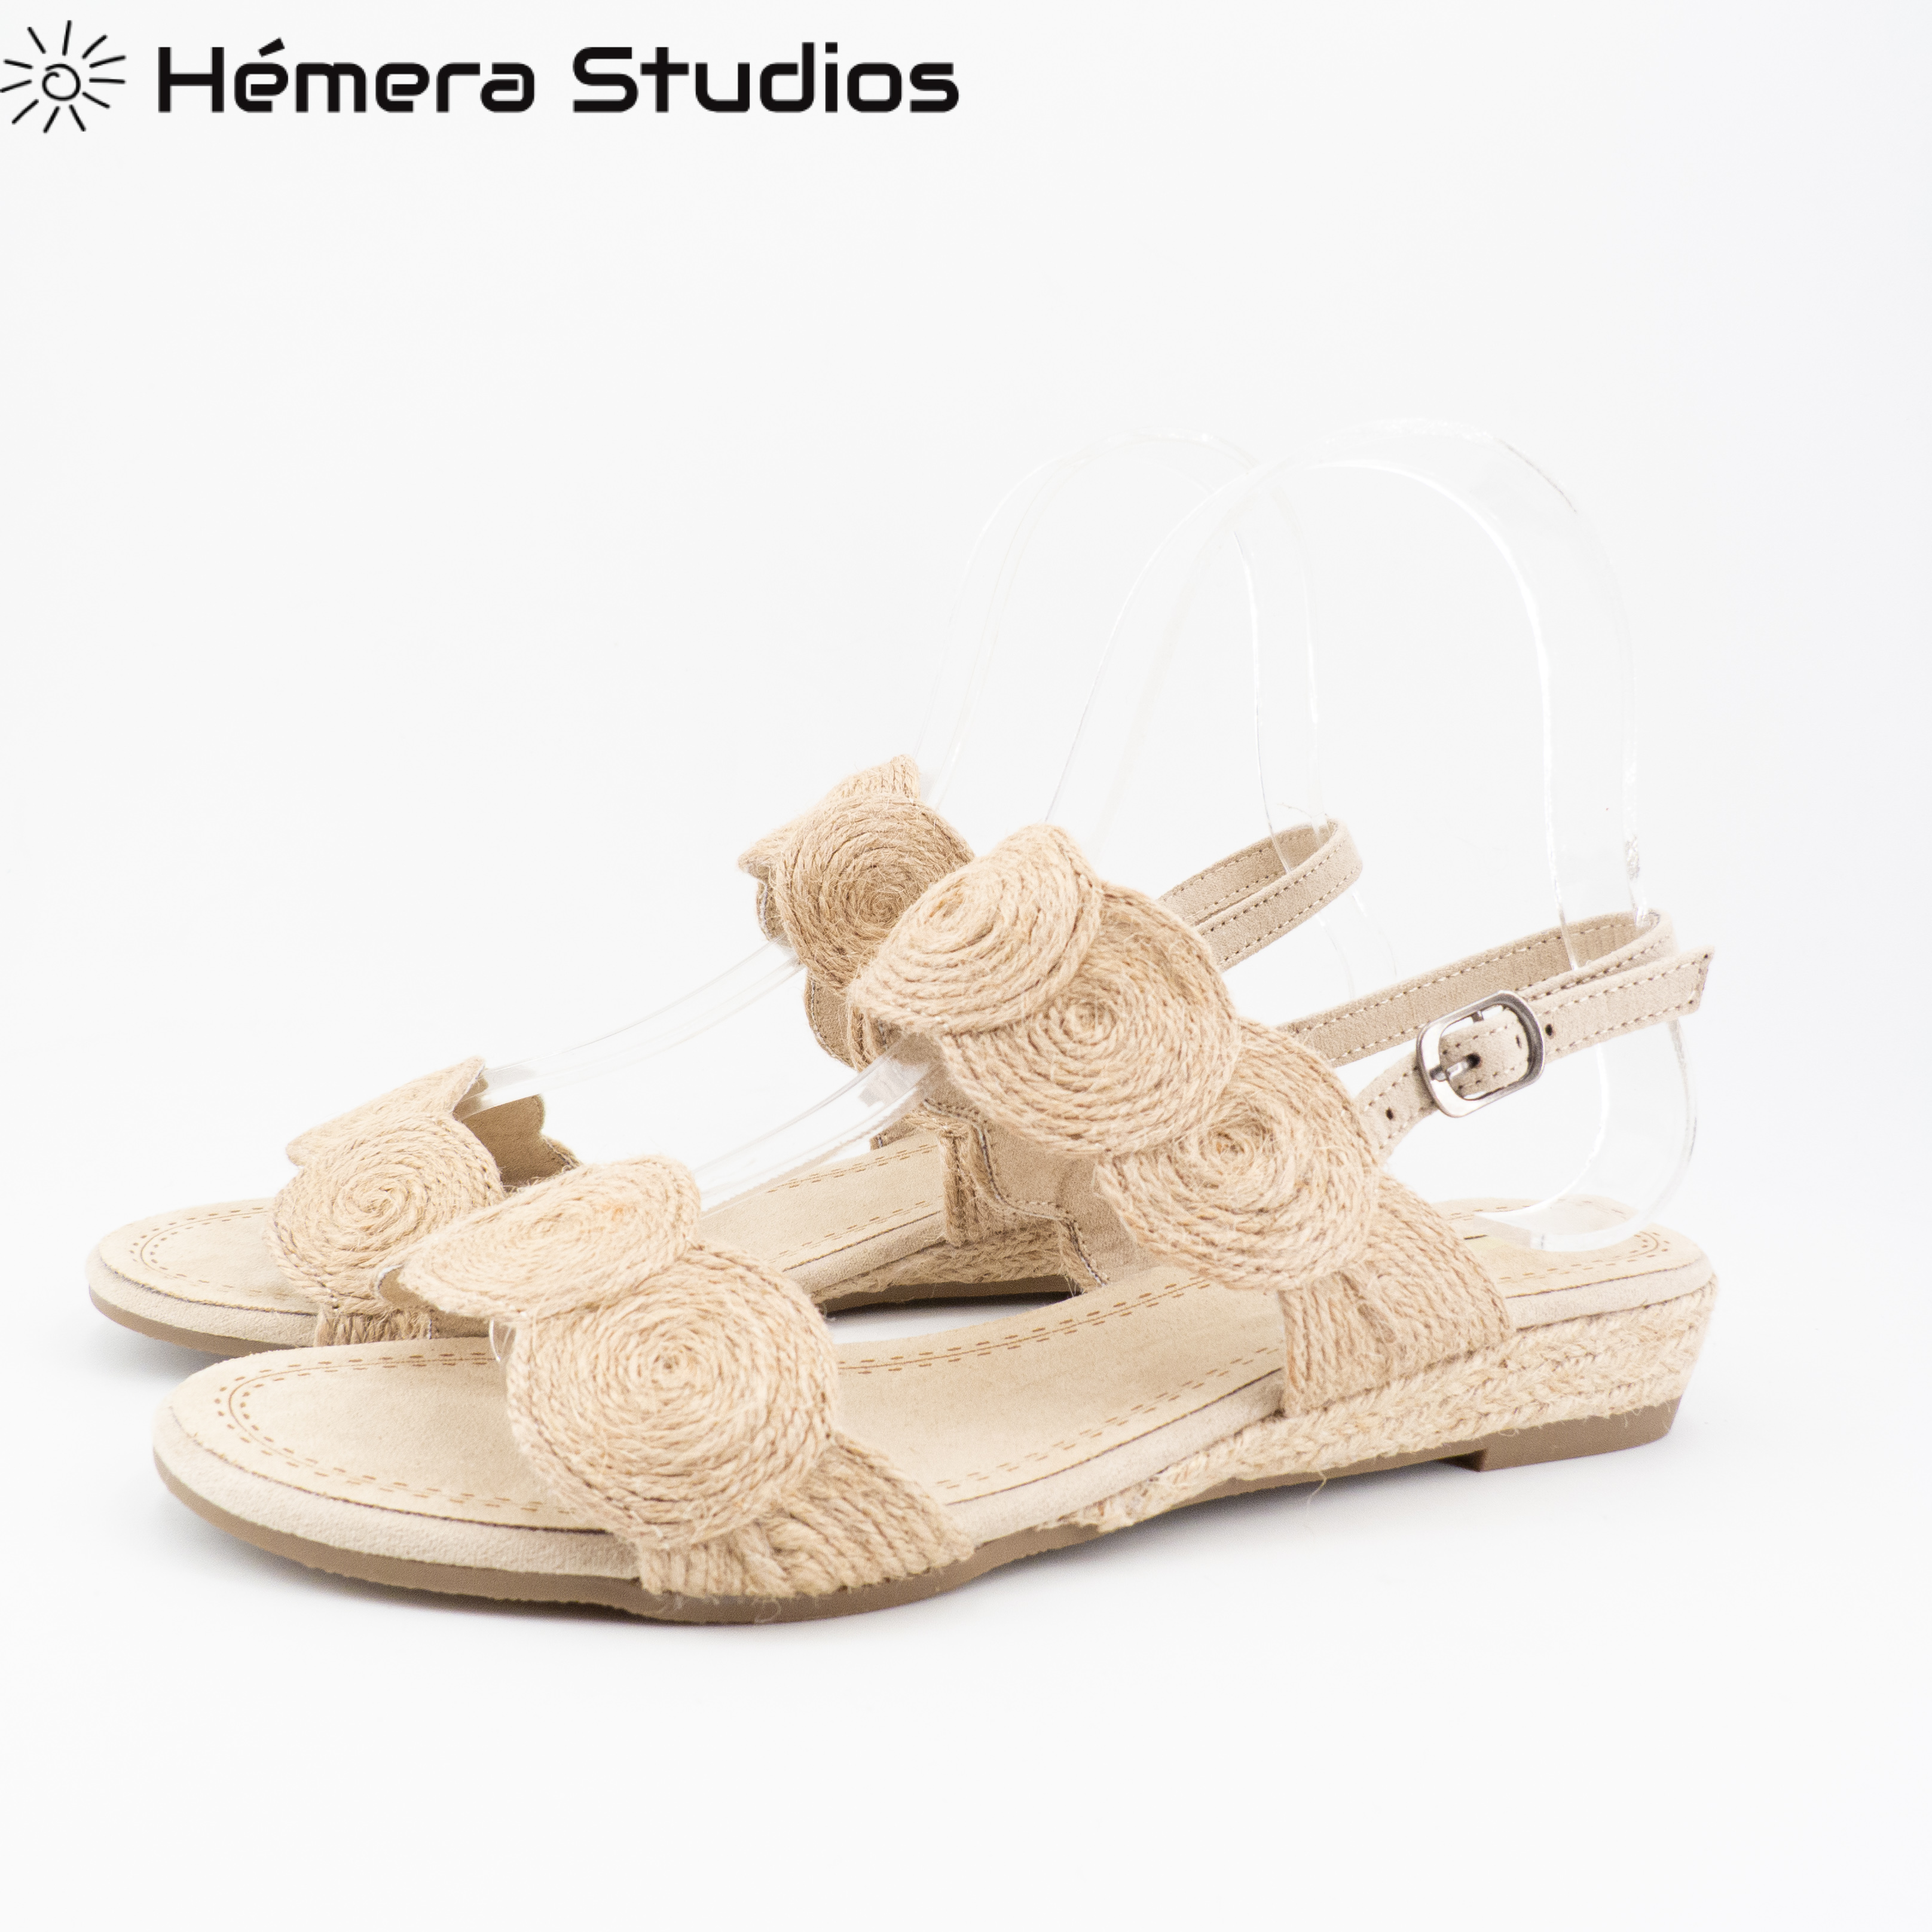 2020 Woman With Wedge Summer Shoes Gladiator Sandals Roman Style Bohemia Platform Sandals In Beige Black Smart Casual Comfortable